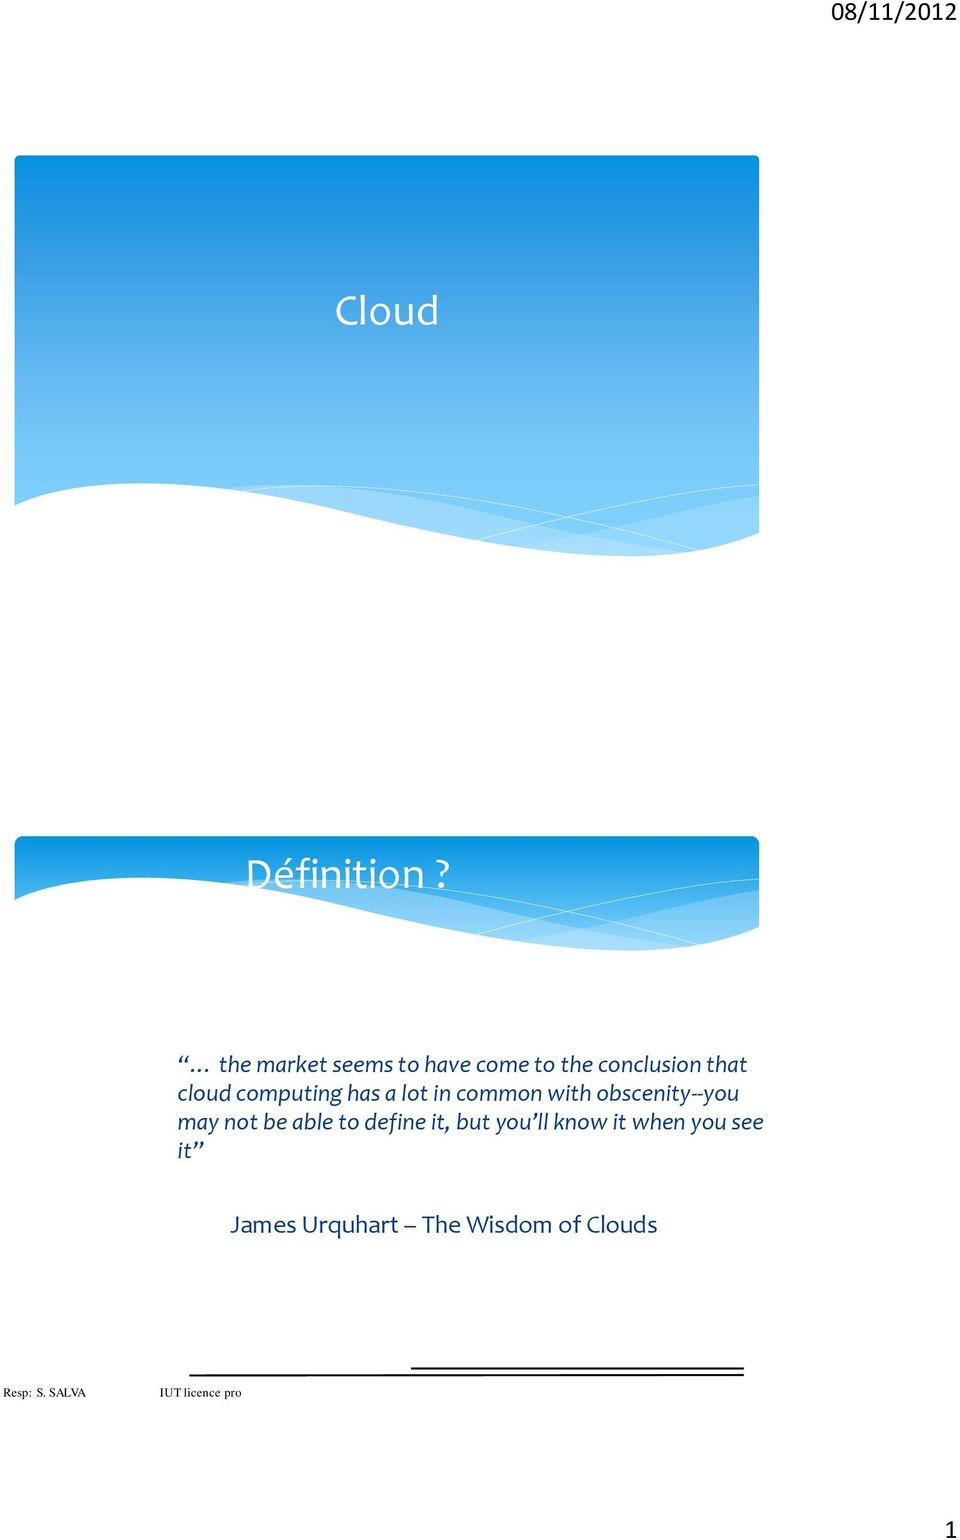 cloud computing has a lot in common with obscenity--you